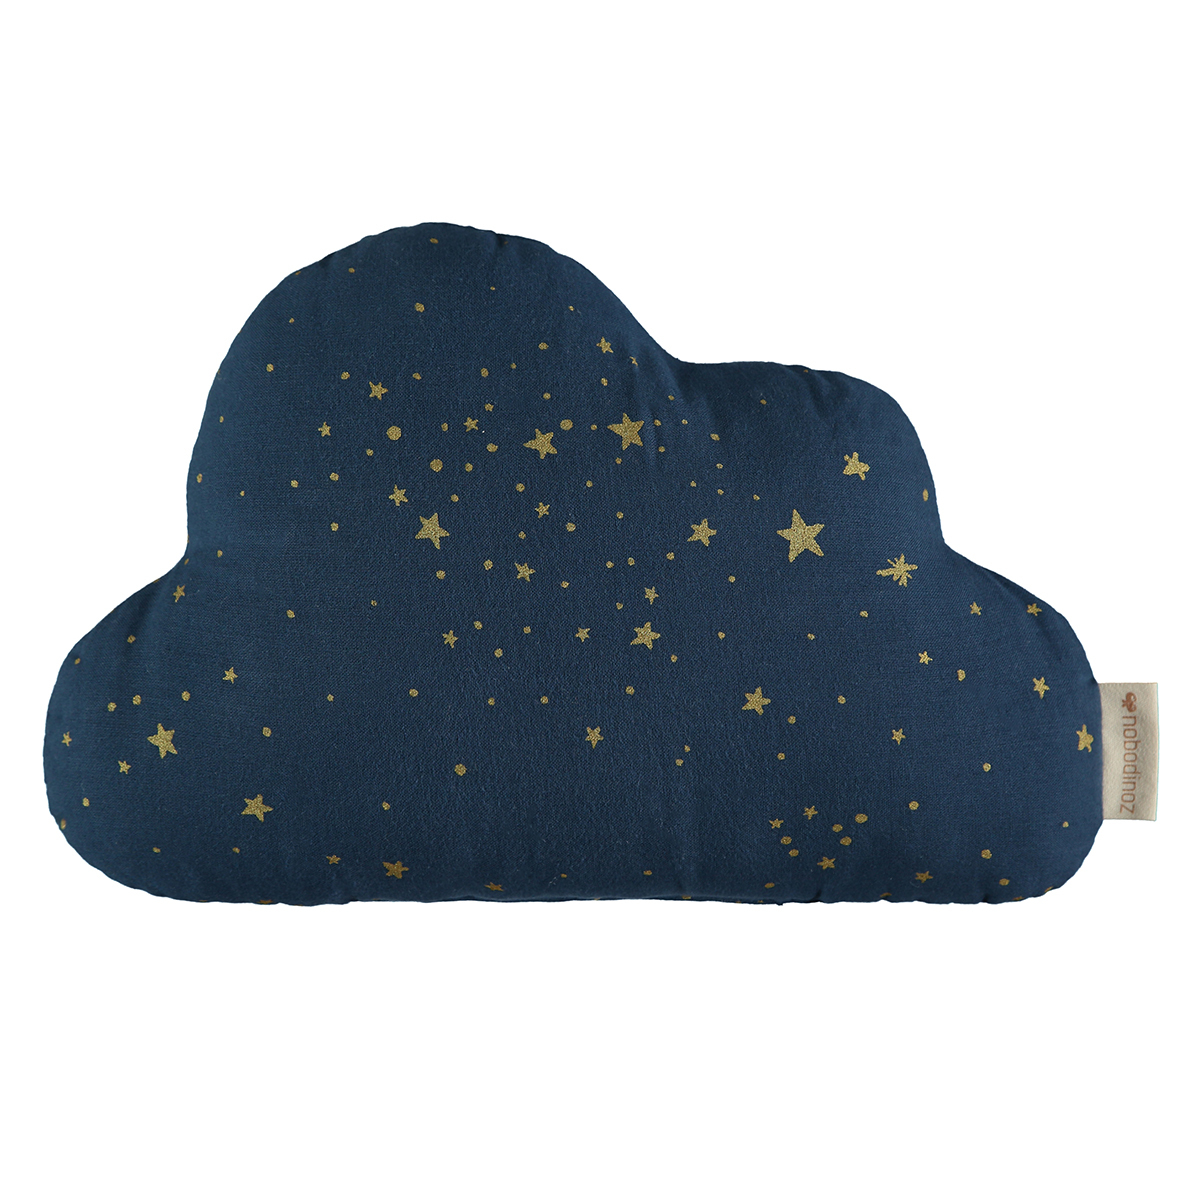 Coussin Coussin Cloud - Gold Stella & Night Blue Coussin Cloud - Gold Stella & Night Blue